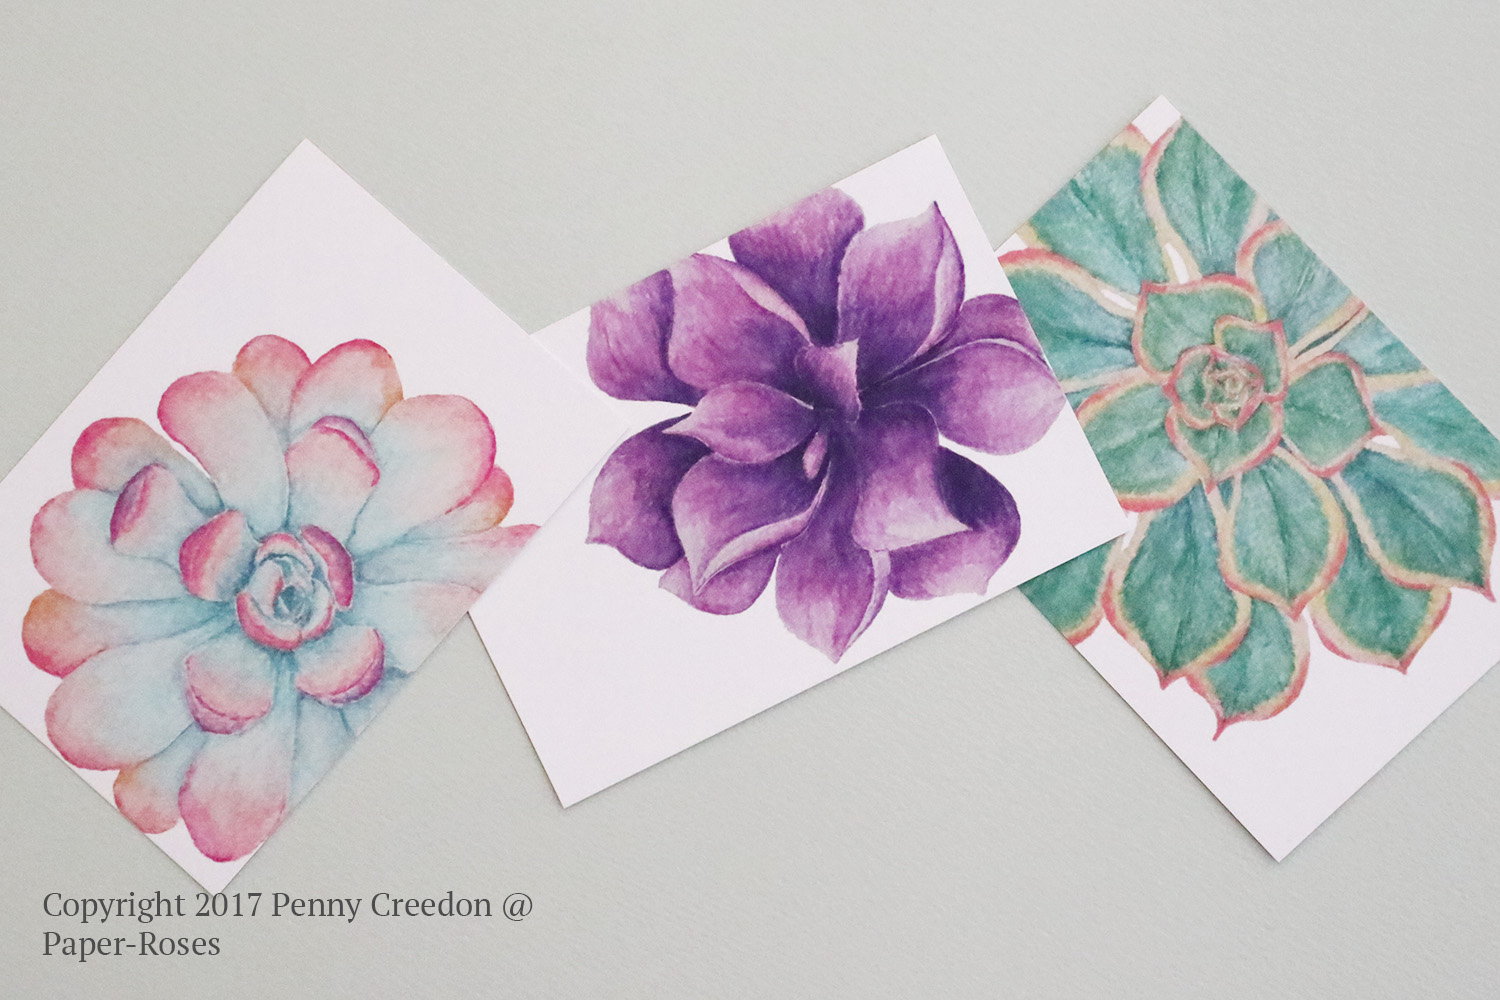 Paper-Roses | Succulents note card collection